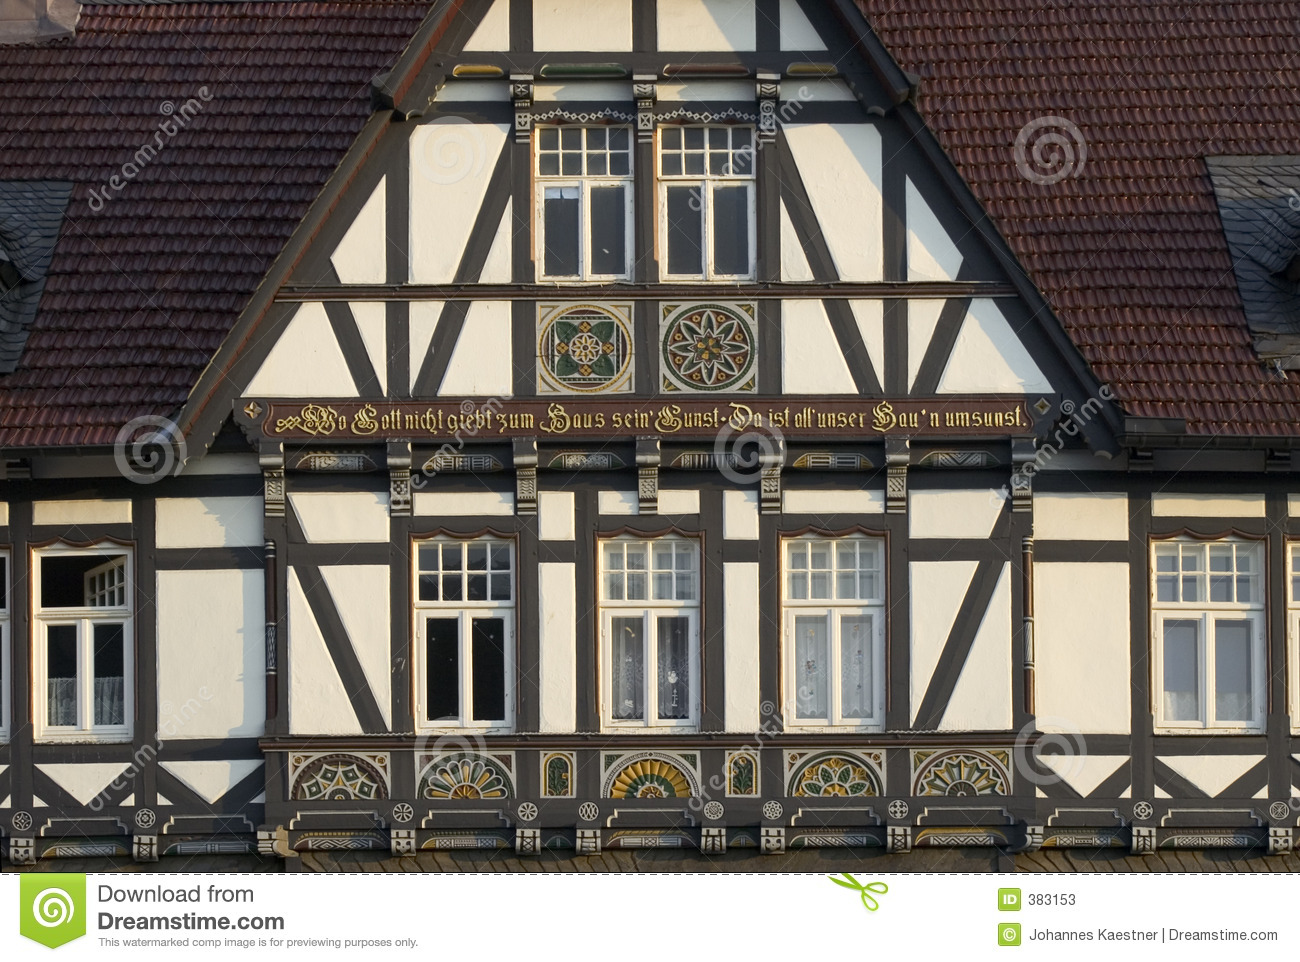 half timbered house stock image image of halftimbered 383153. Black Bedroom Furniture Sets. Home Design Ideas